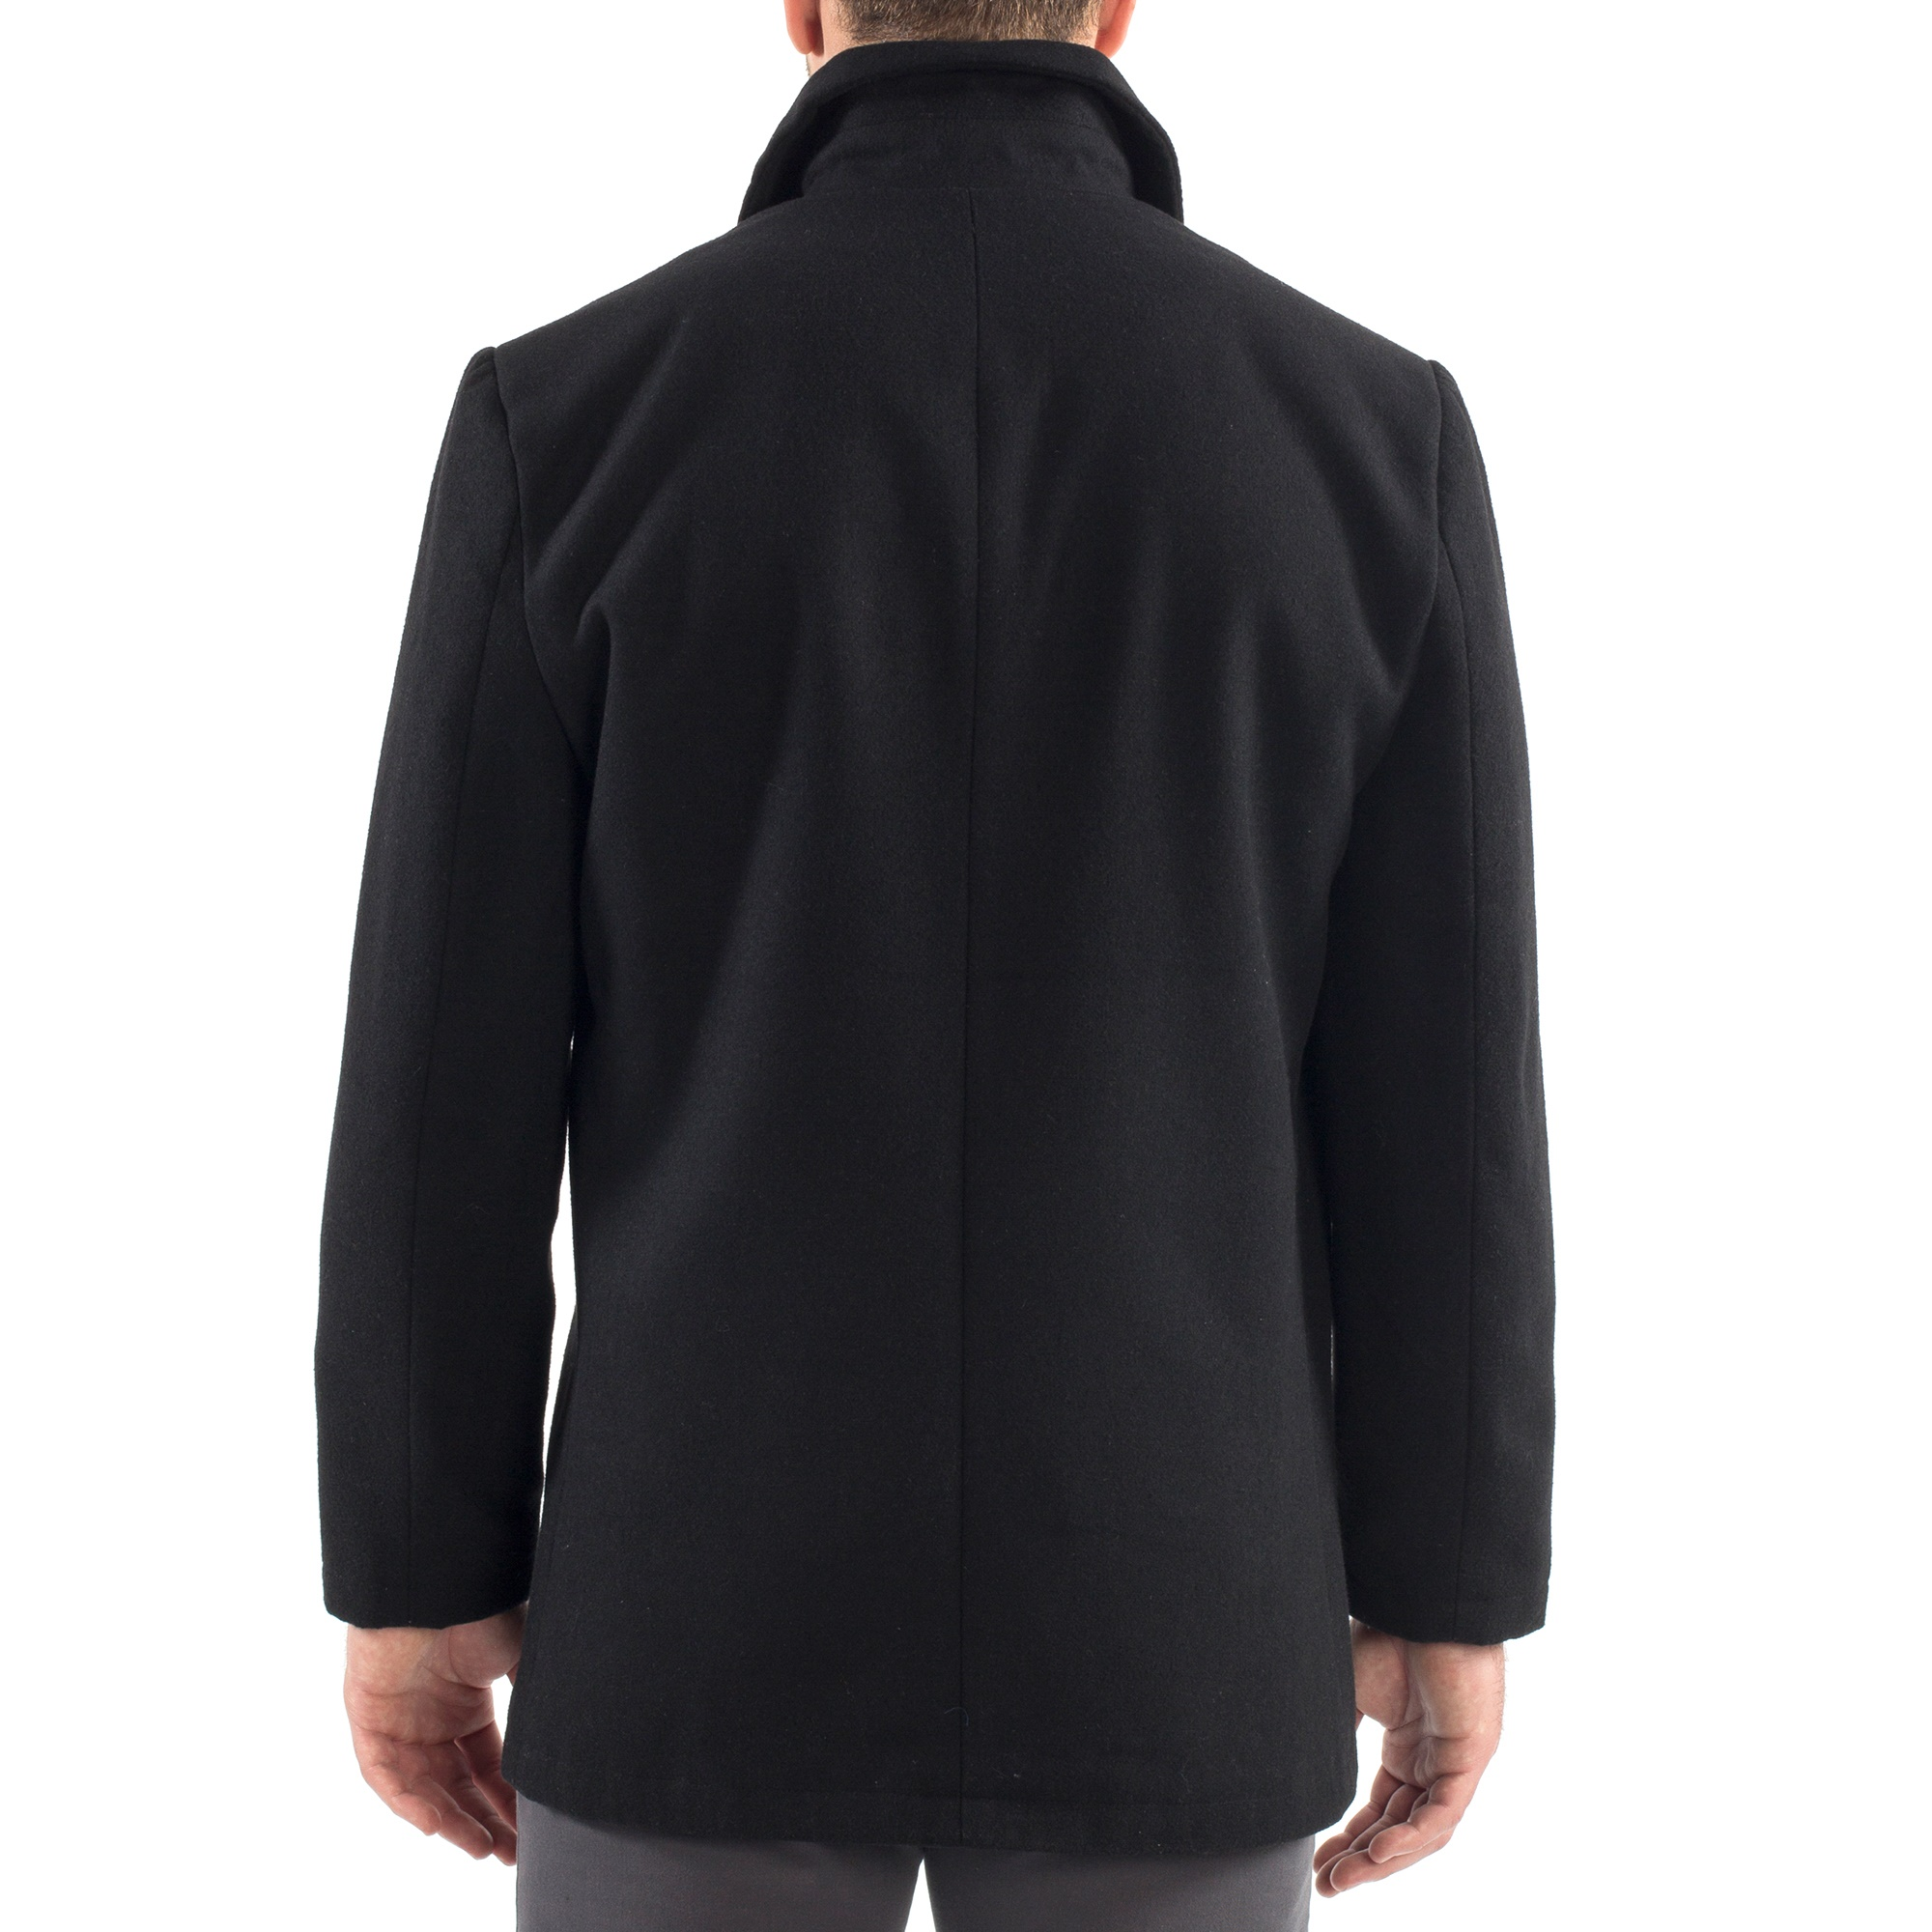 Alpine-Swiss-Vance-Mens-Jacket-Wool-Blend-Button-Up-Coat-Dress-Car-Coat-Blazer thumbnail 19